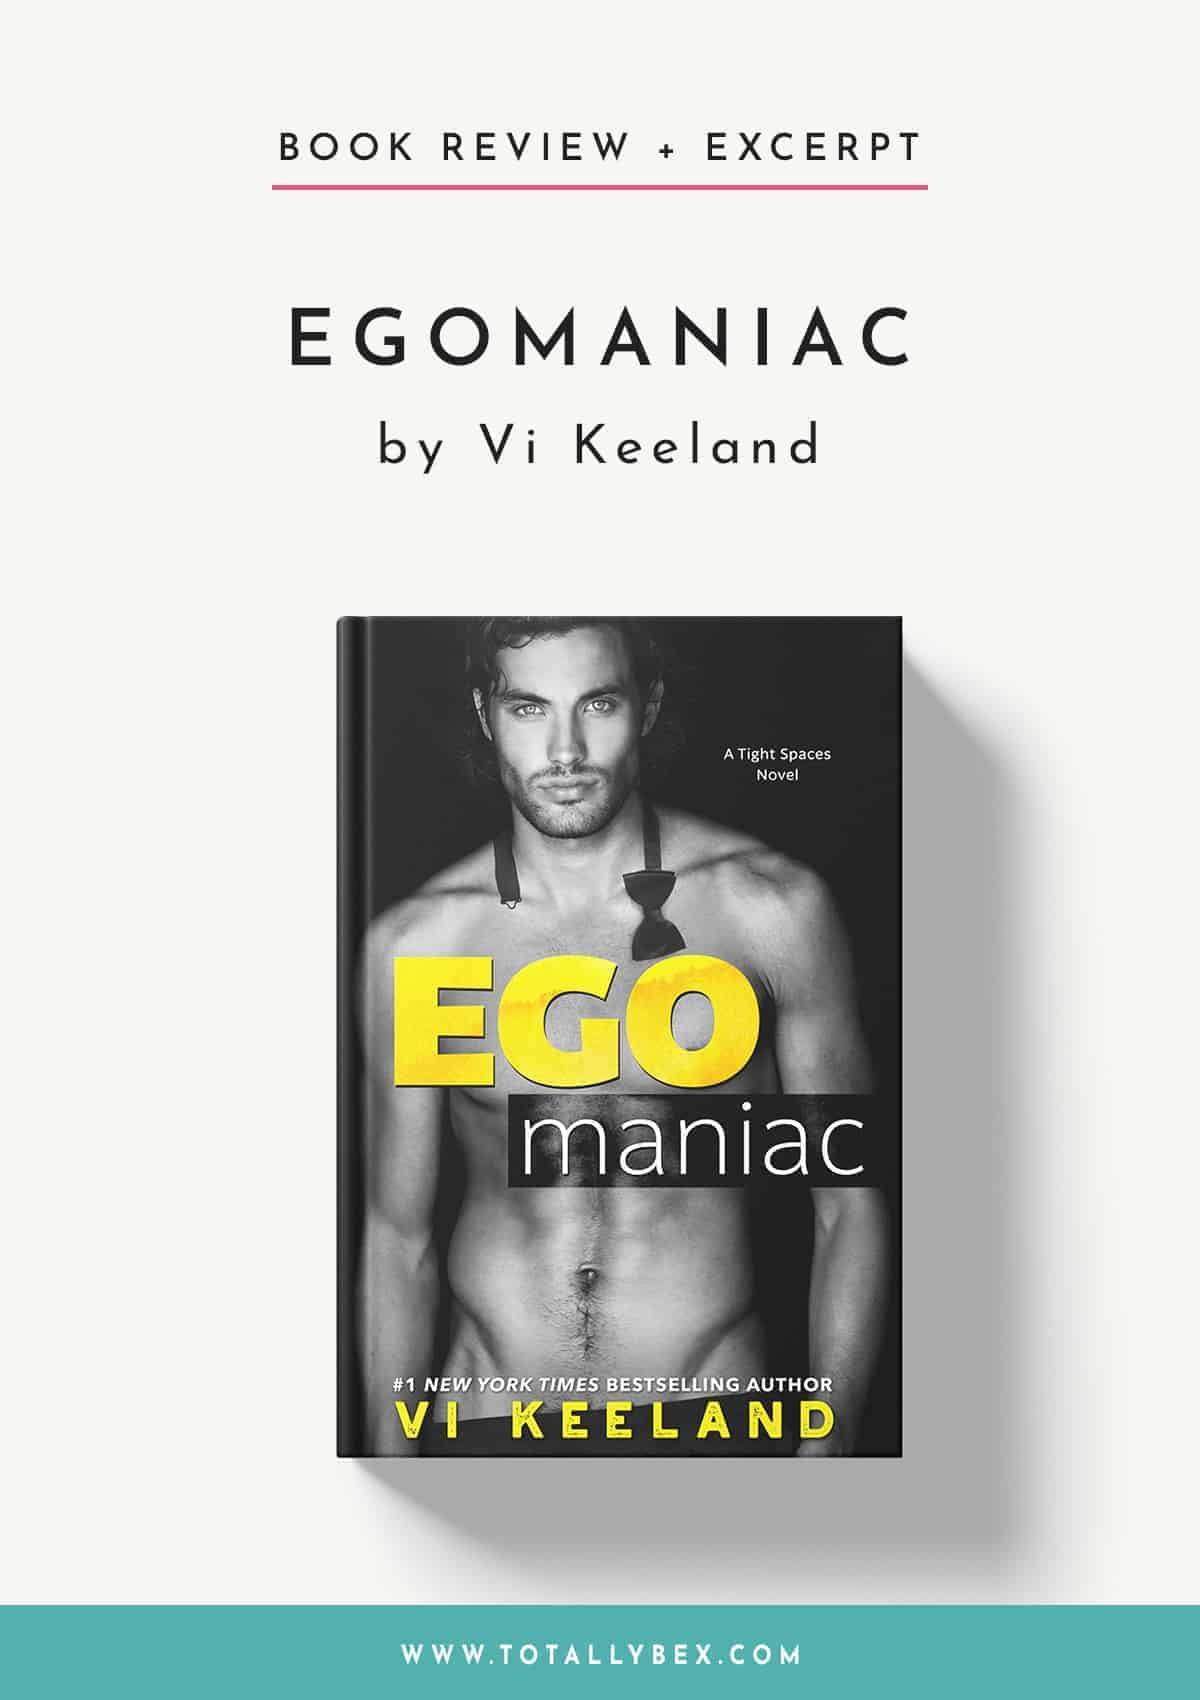 Egomaniac by Vi Keeland-Book Review+Excerpt